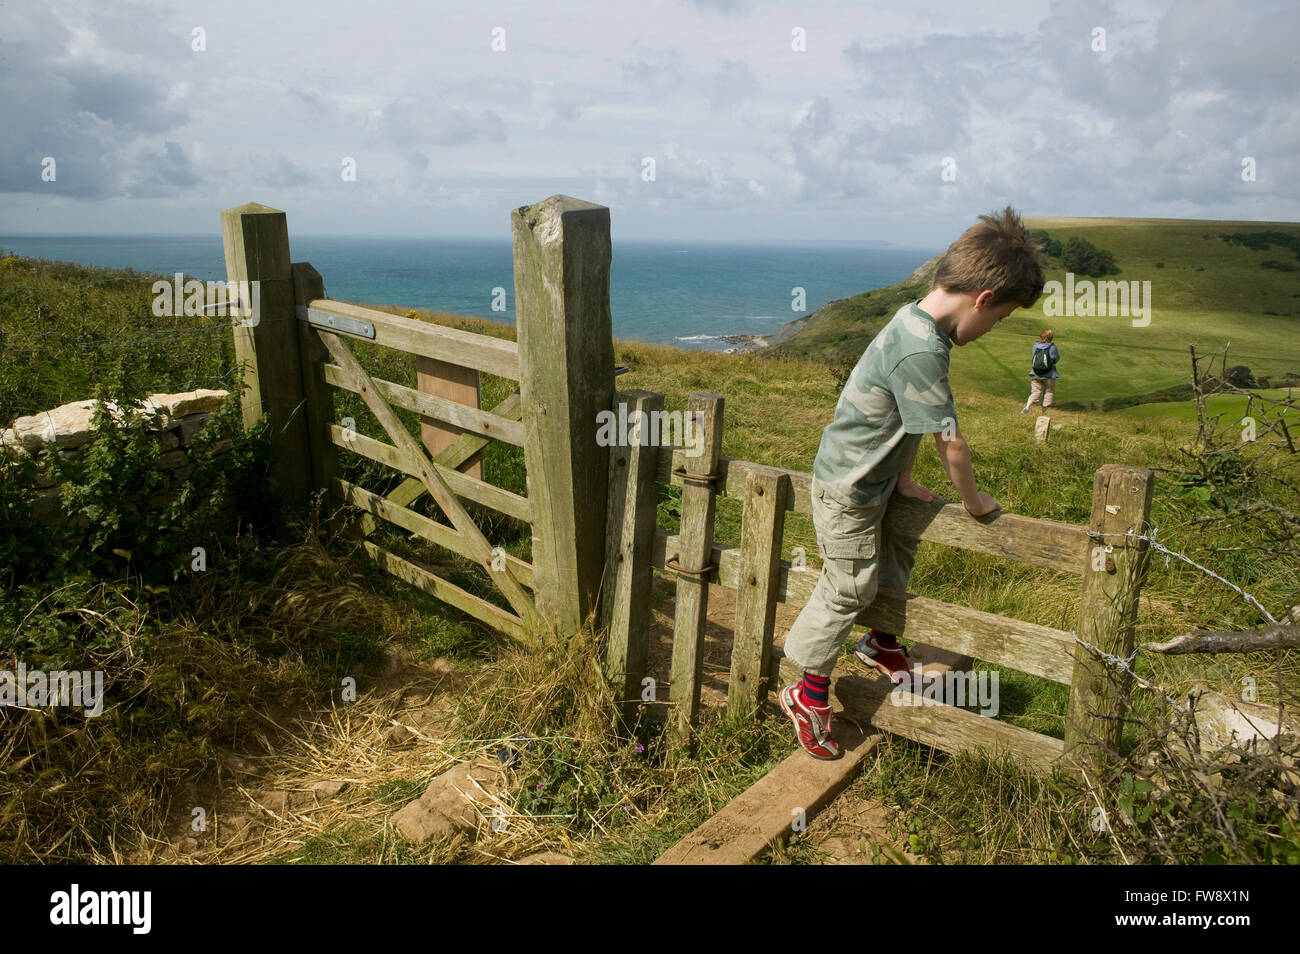 A young boy lags behind his family as they go on a walk along the cliff path in Dorset, UK. Climbing ove r a stile - Stock Image